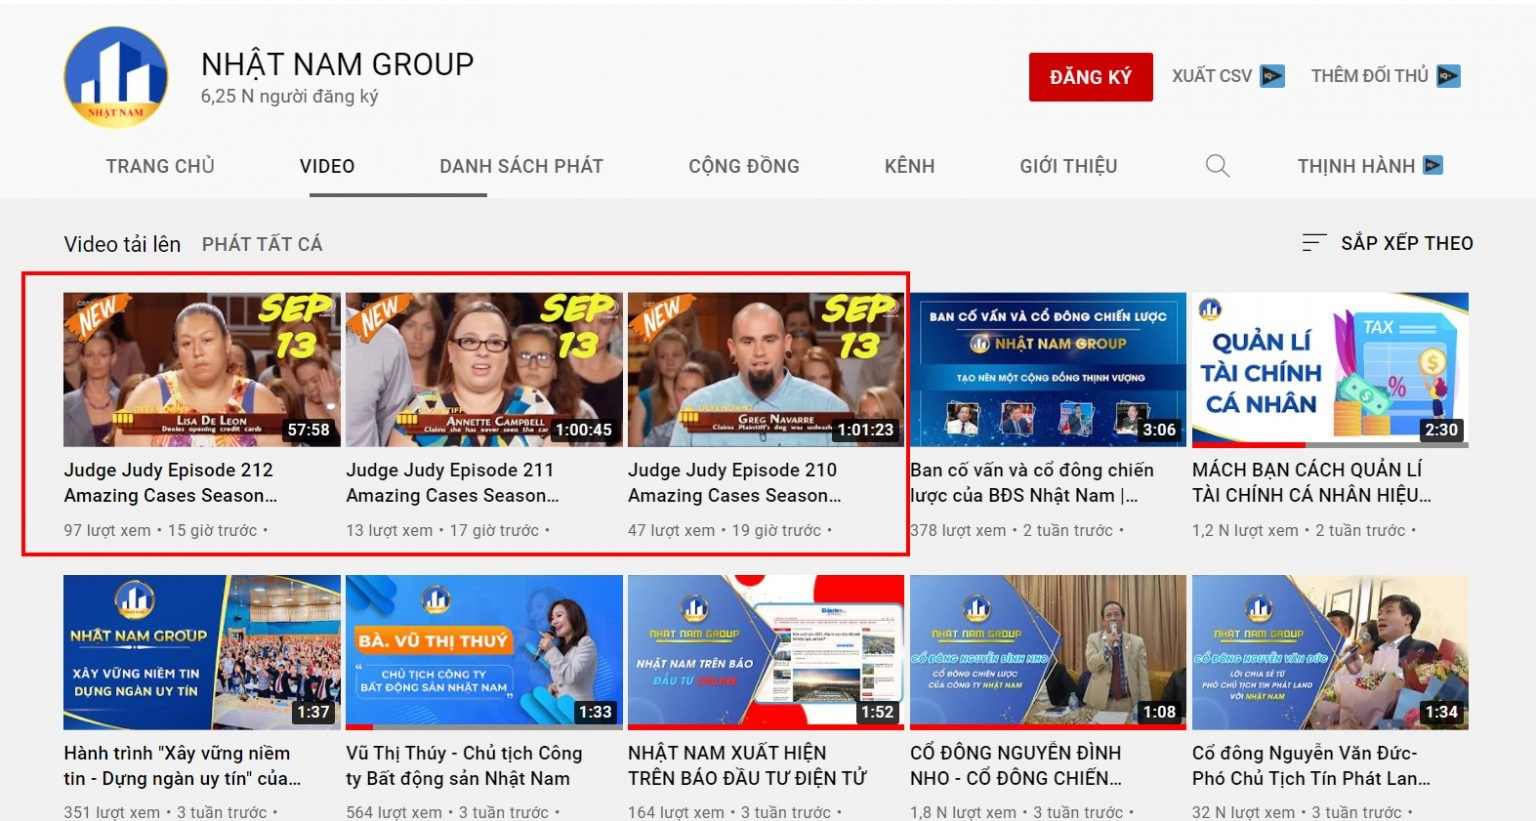 channel-youtube-nhat-nam-group